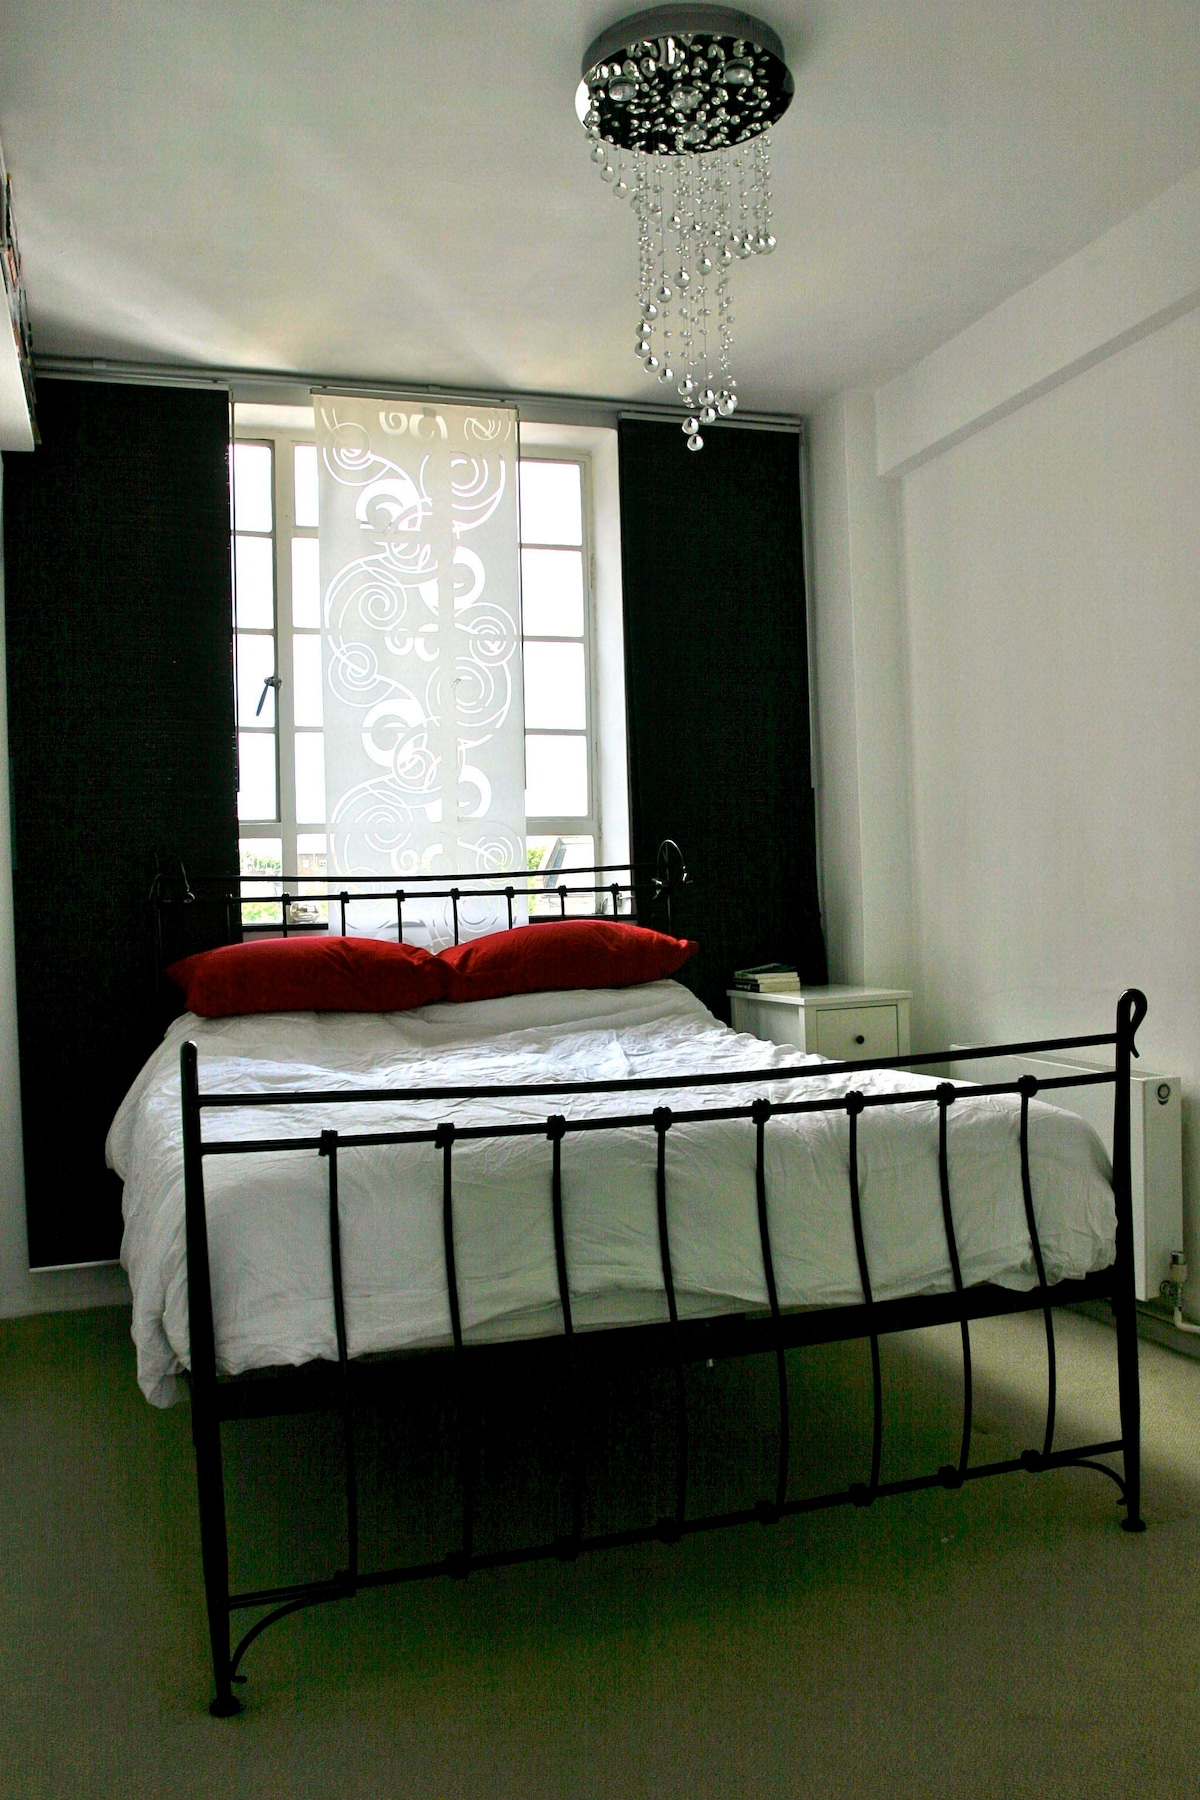 Master bedroom has a sumptuous super king size iron bed, plus fitted wardrobe. Second bedroom is the same size and has a large new single sofa bed